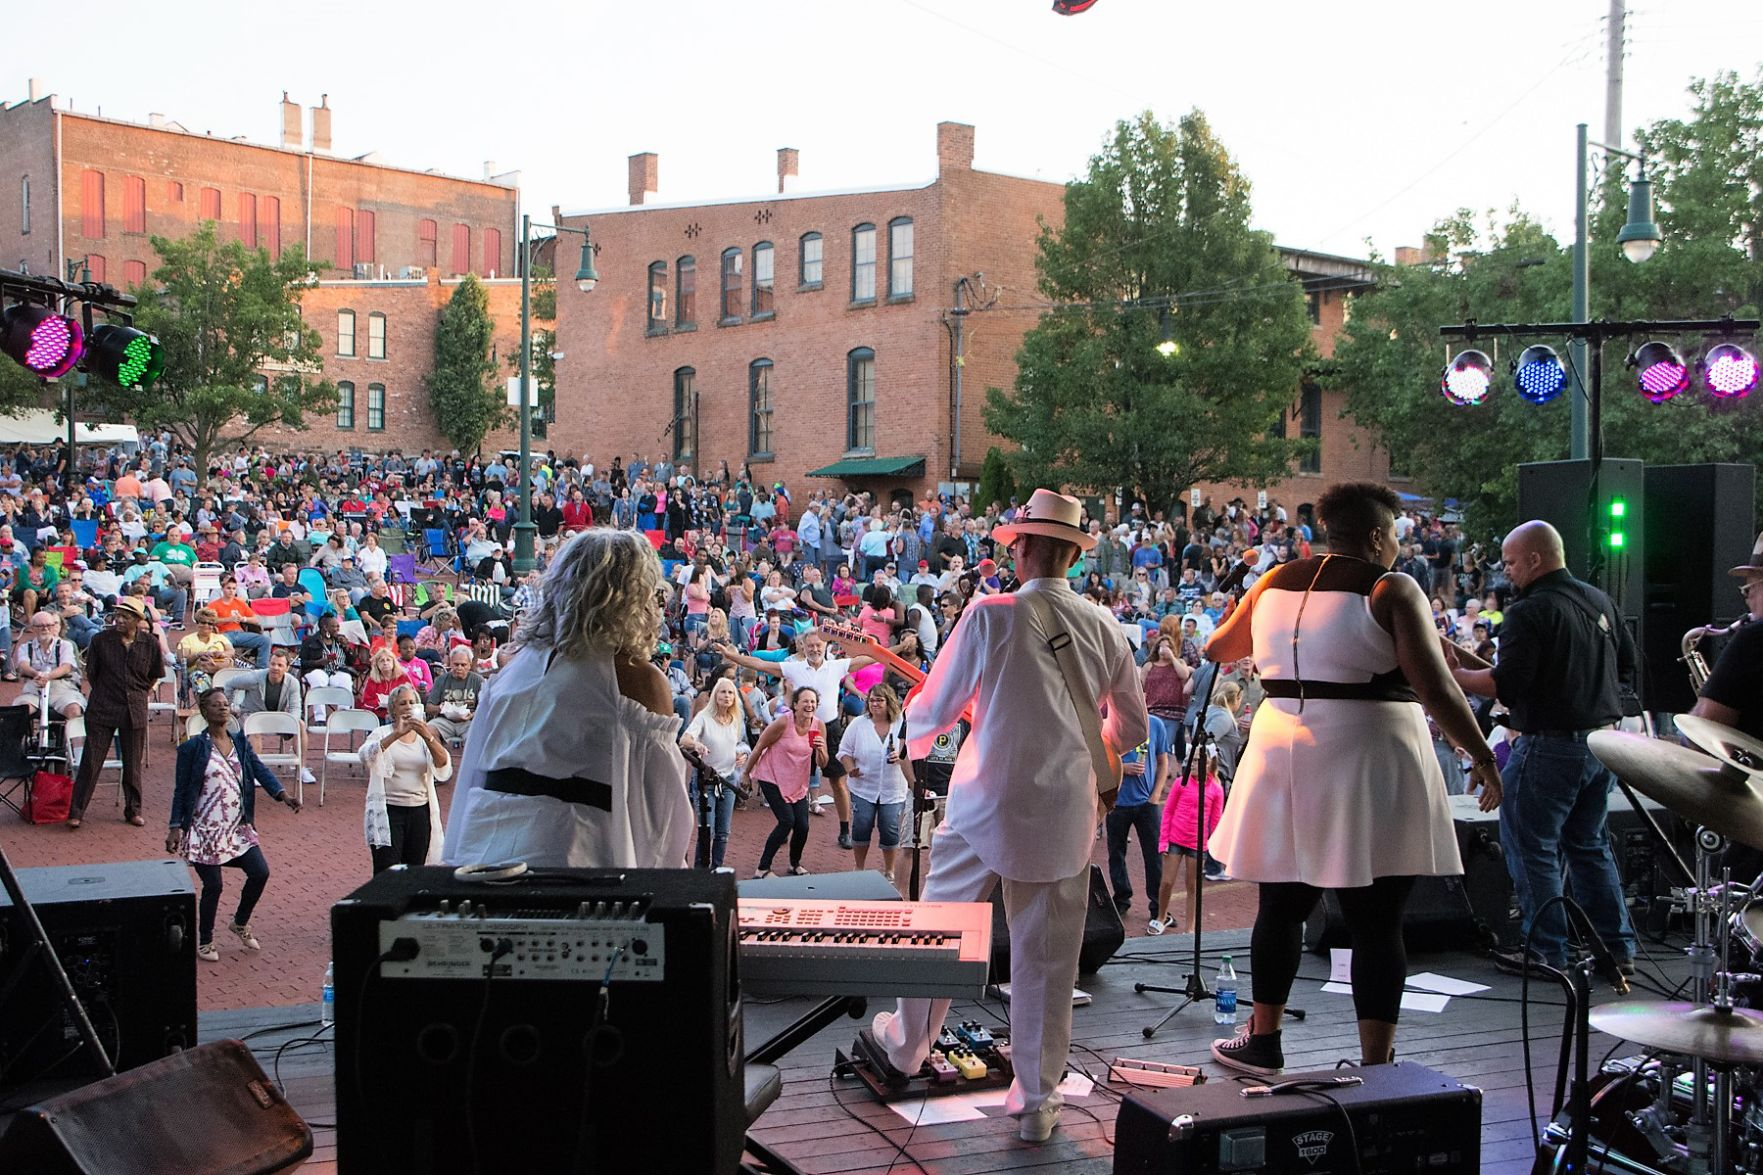 Final Friday concerts kick off May 31 with County Line